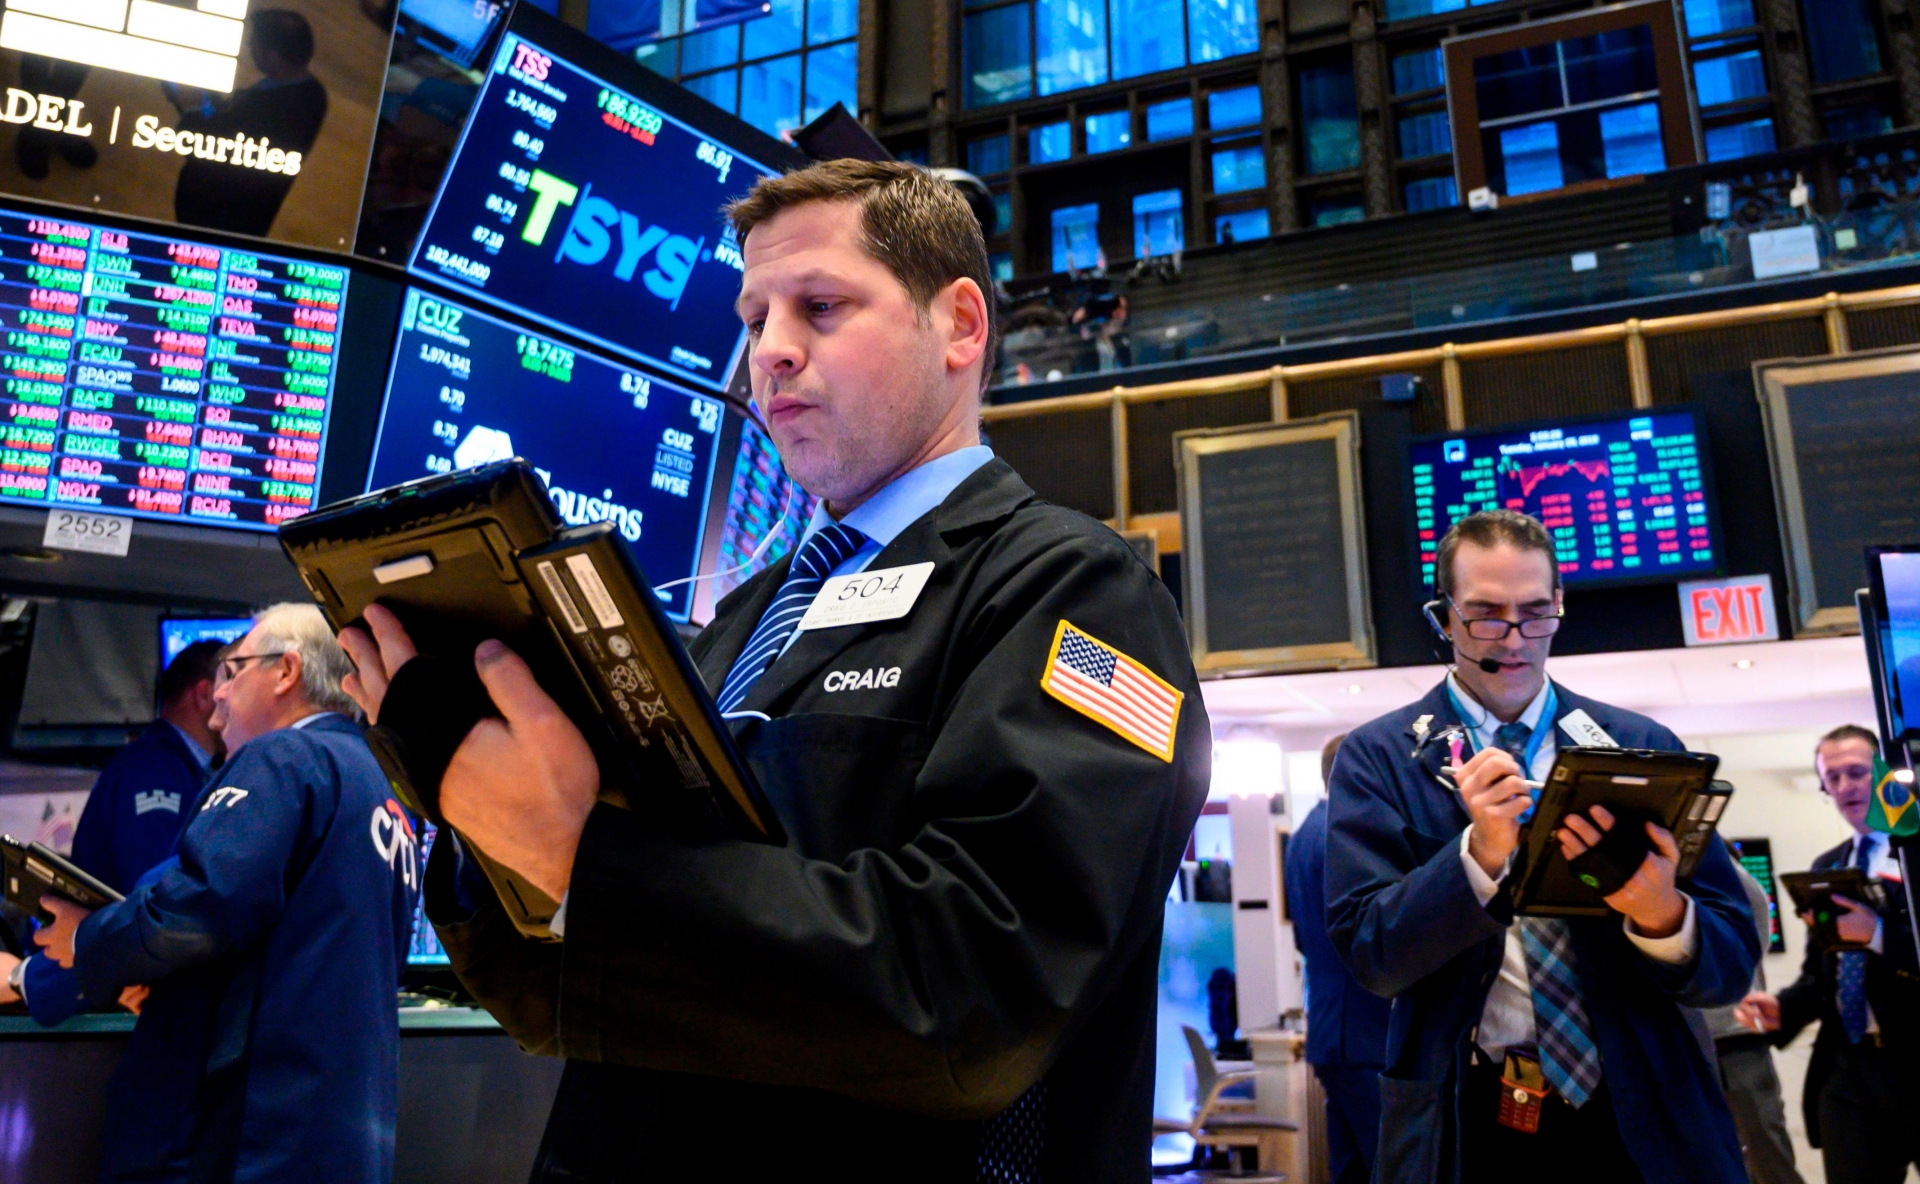 Stock Price Today: U.S. stock markets are down, big moves in pre-market